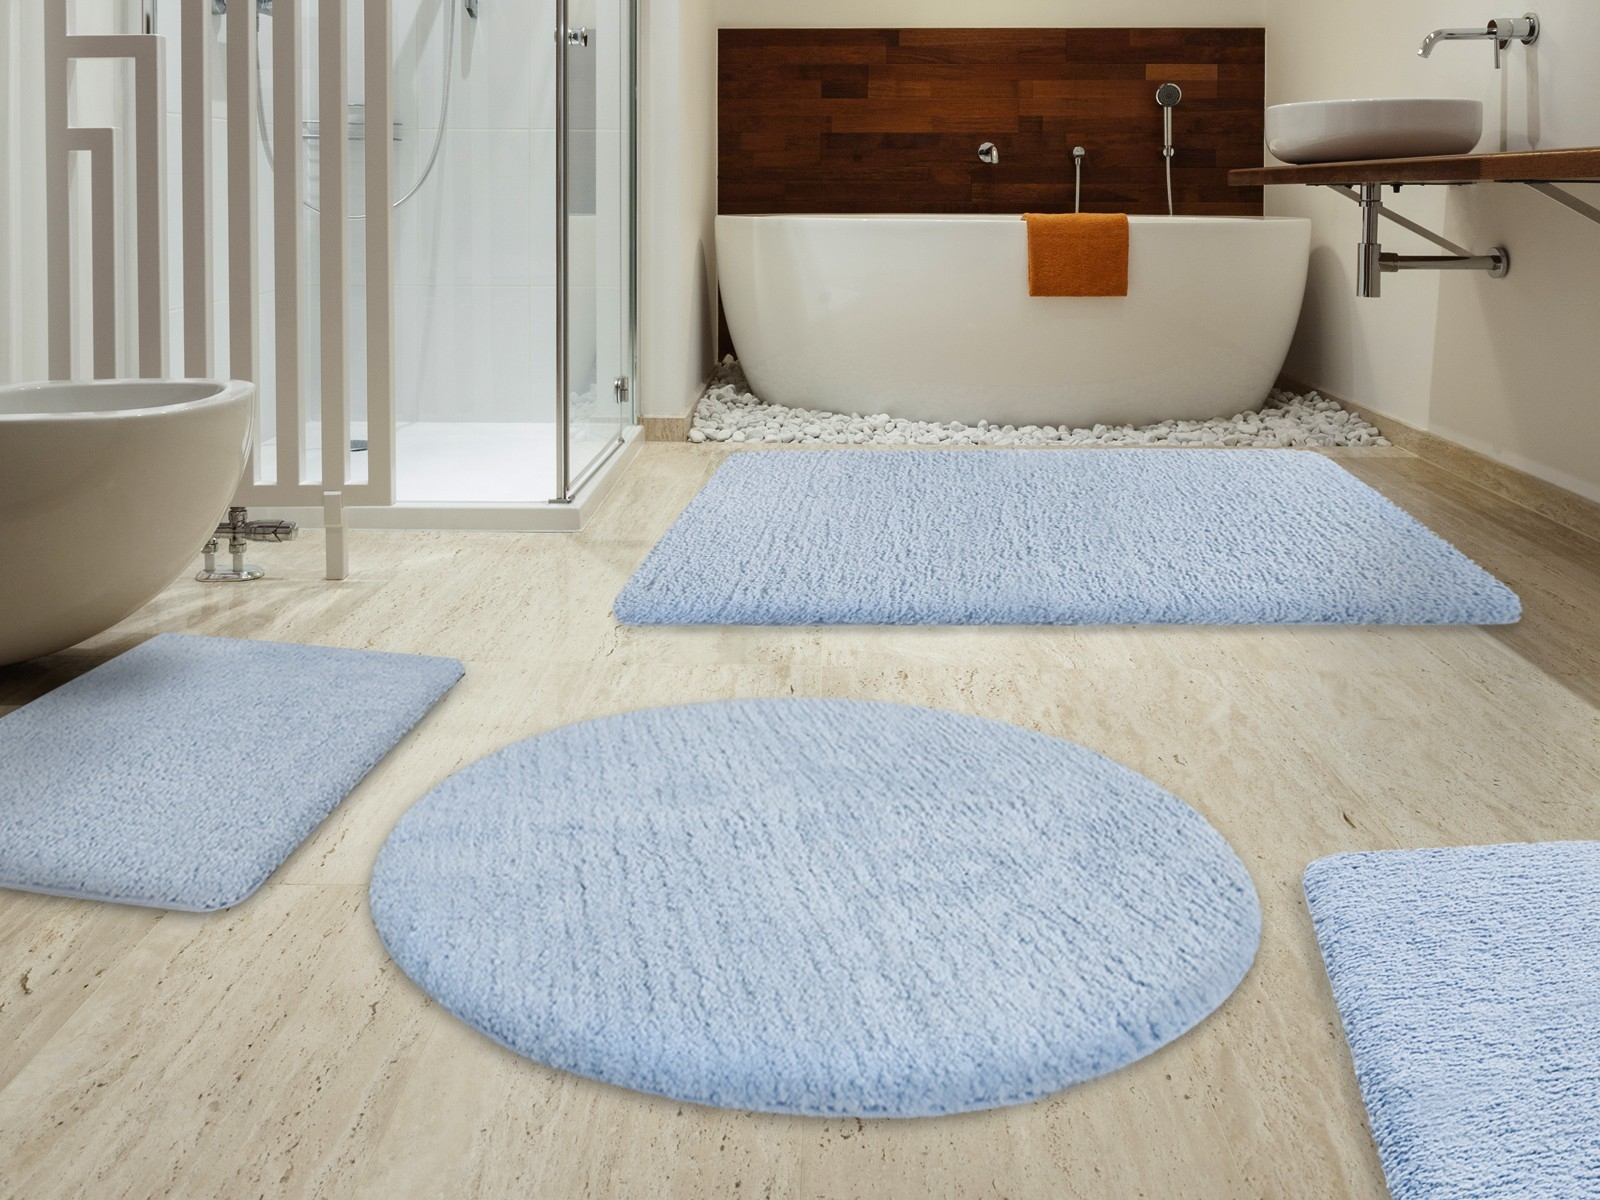 Oversized Bath Rugs Mat